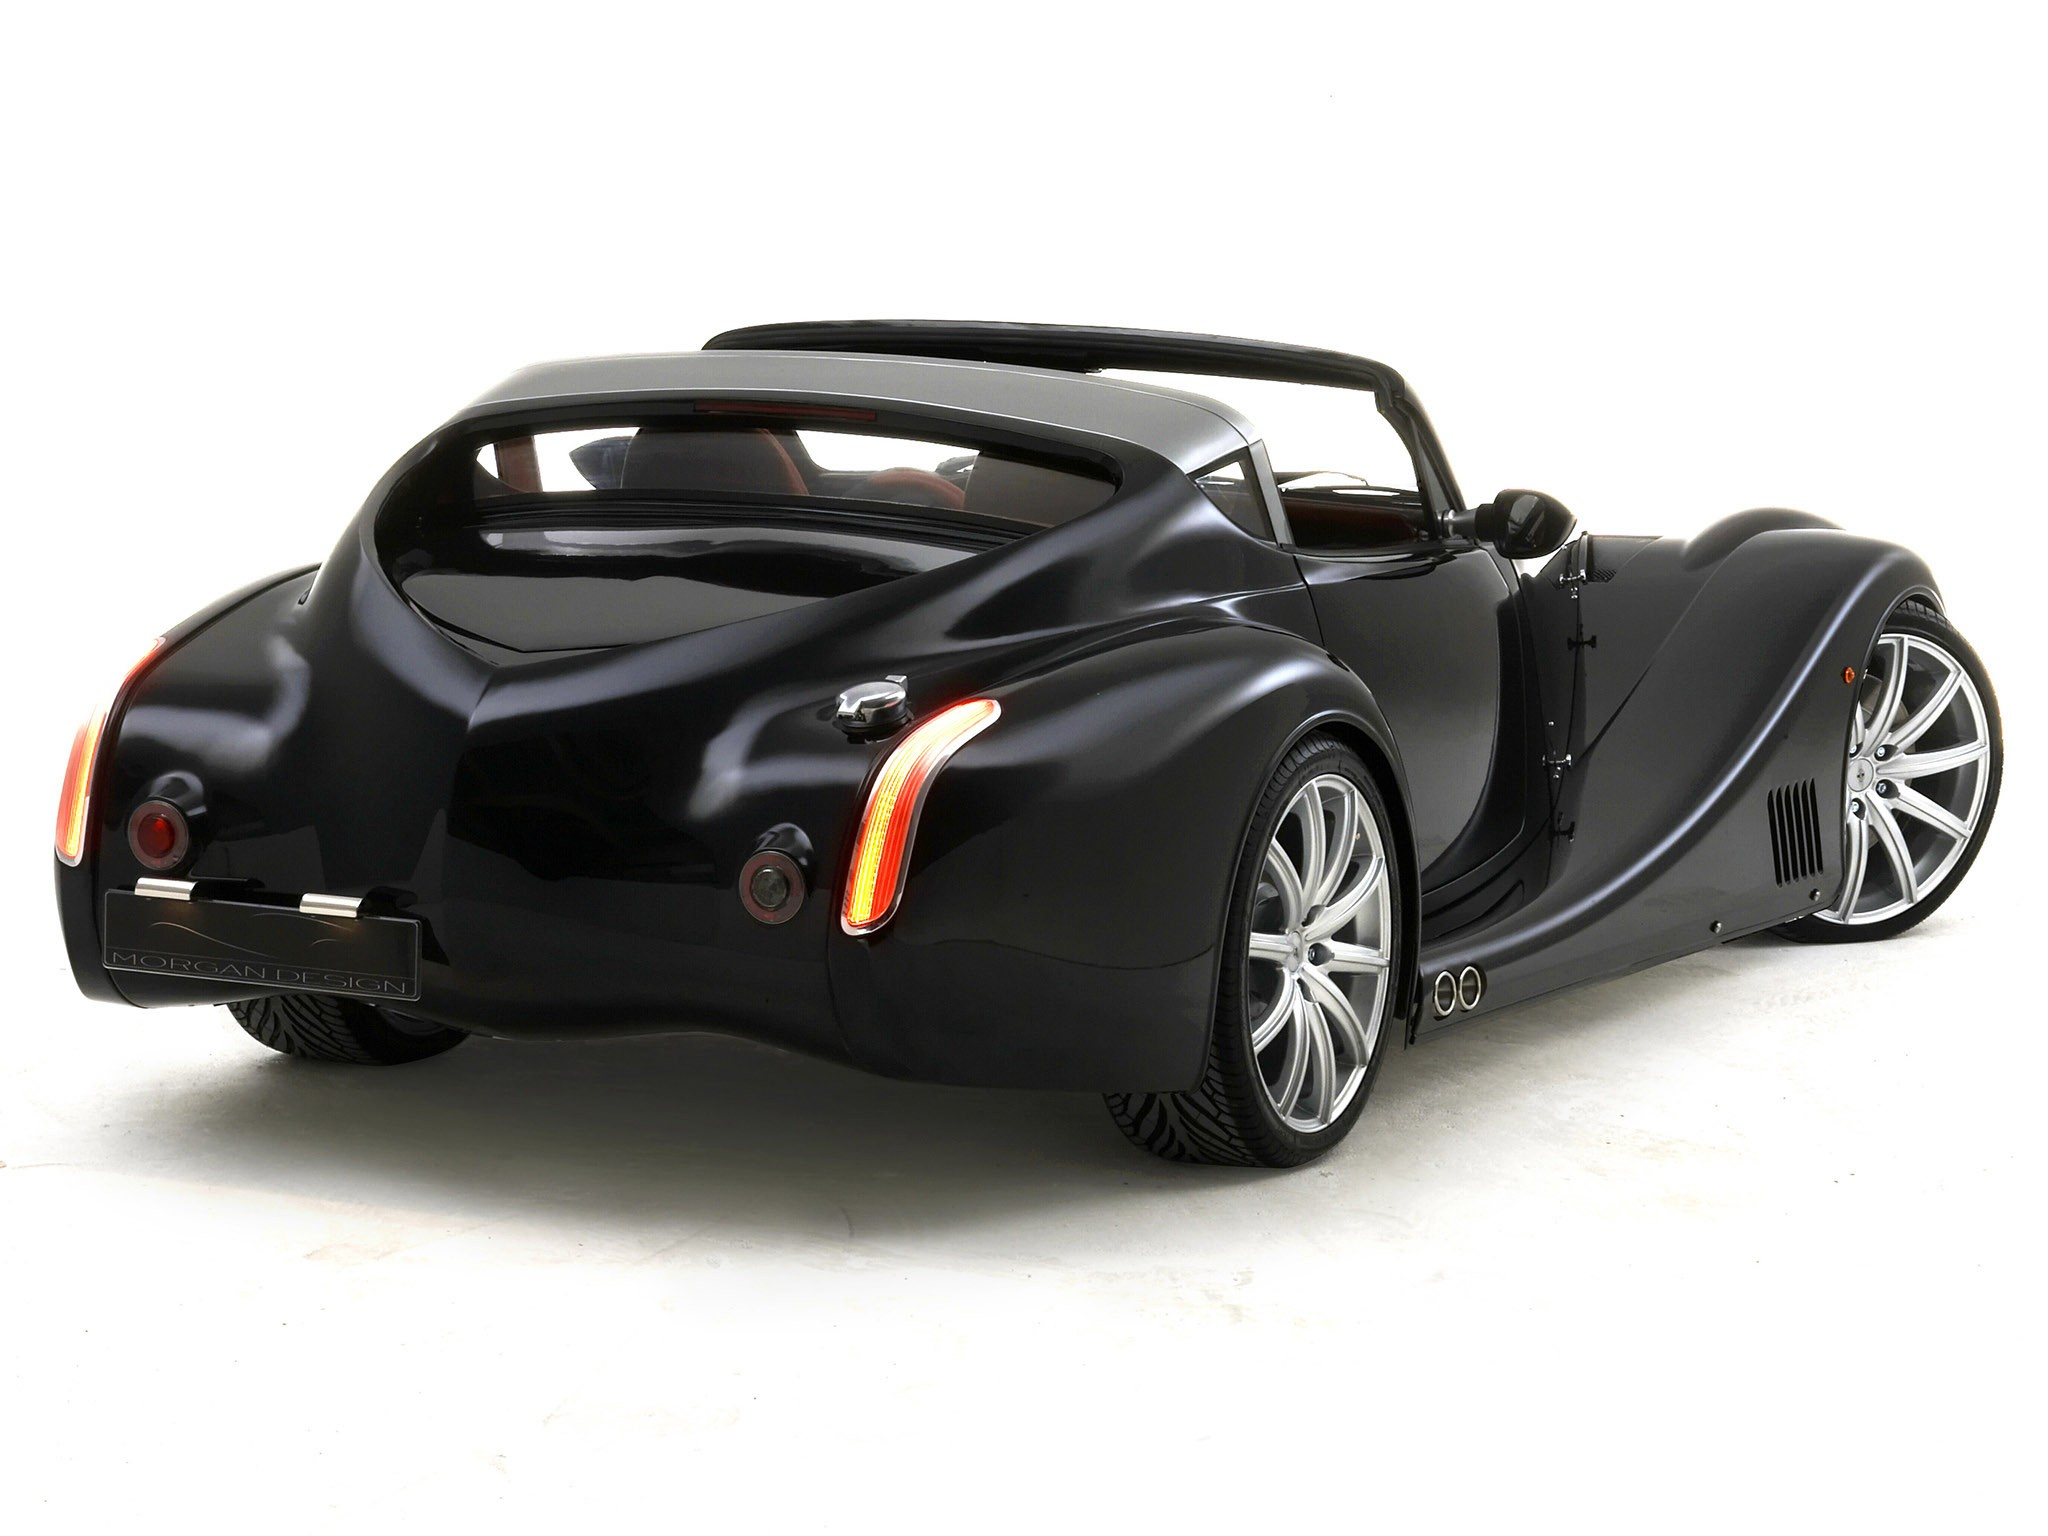 Morgan Aero Supersports (2009)